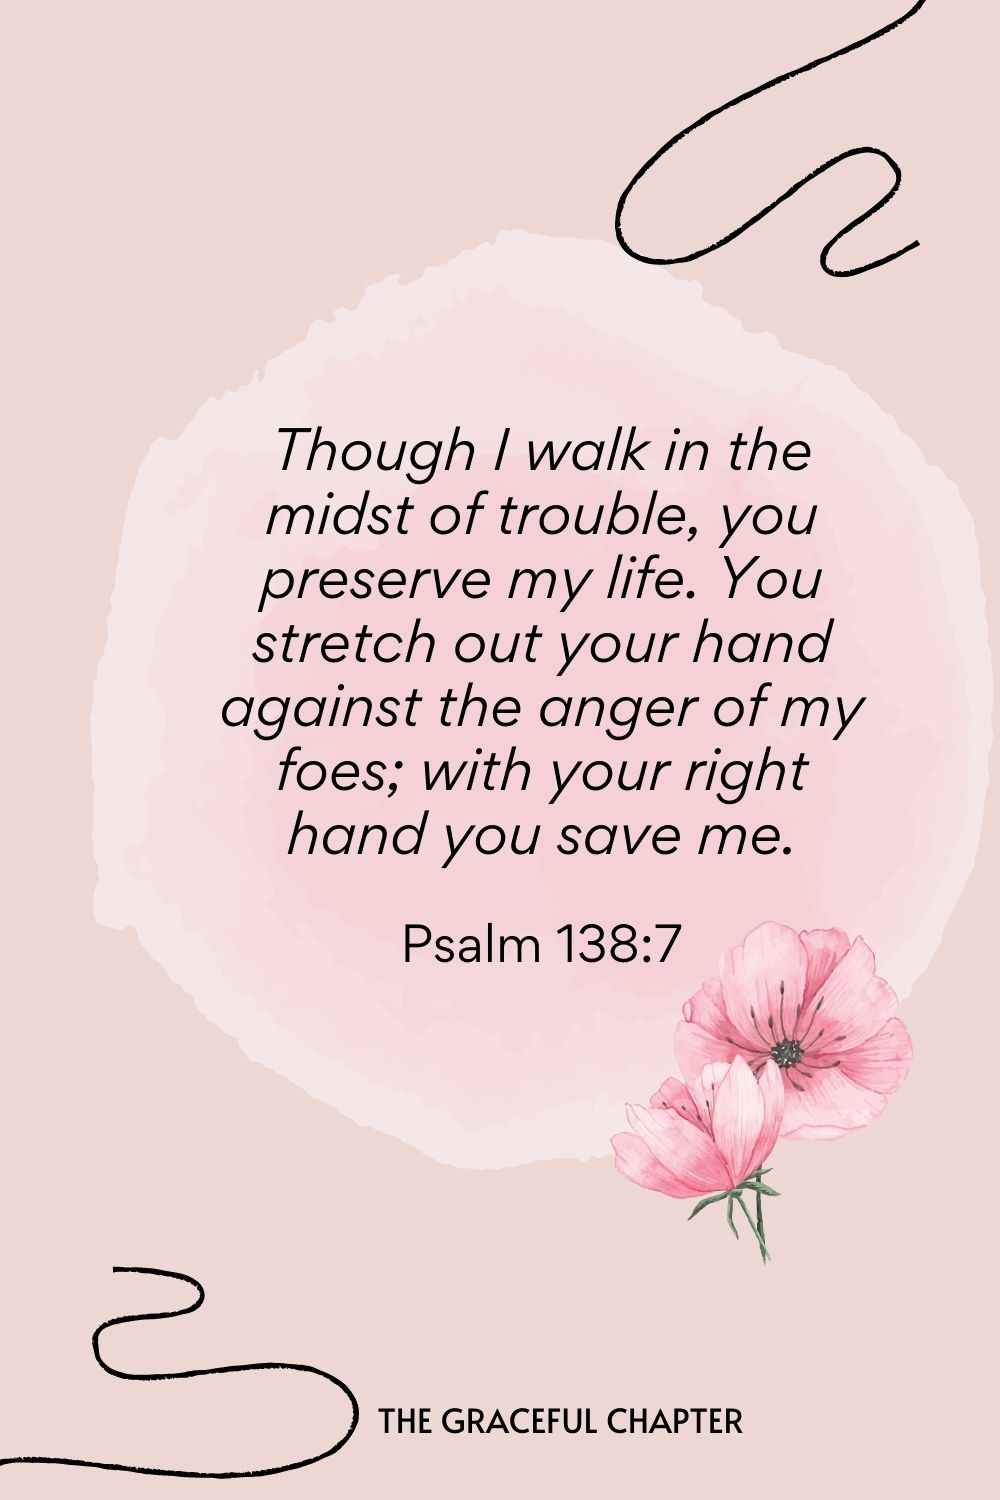 Though I walk in the midst of trouble, you preserve my life. You stretch out your hand against the anger of my foes; with your right hand you save me.  Psalm 138:7